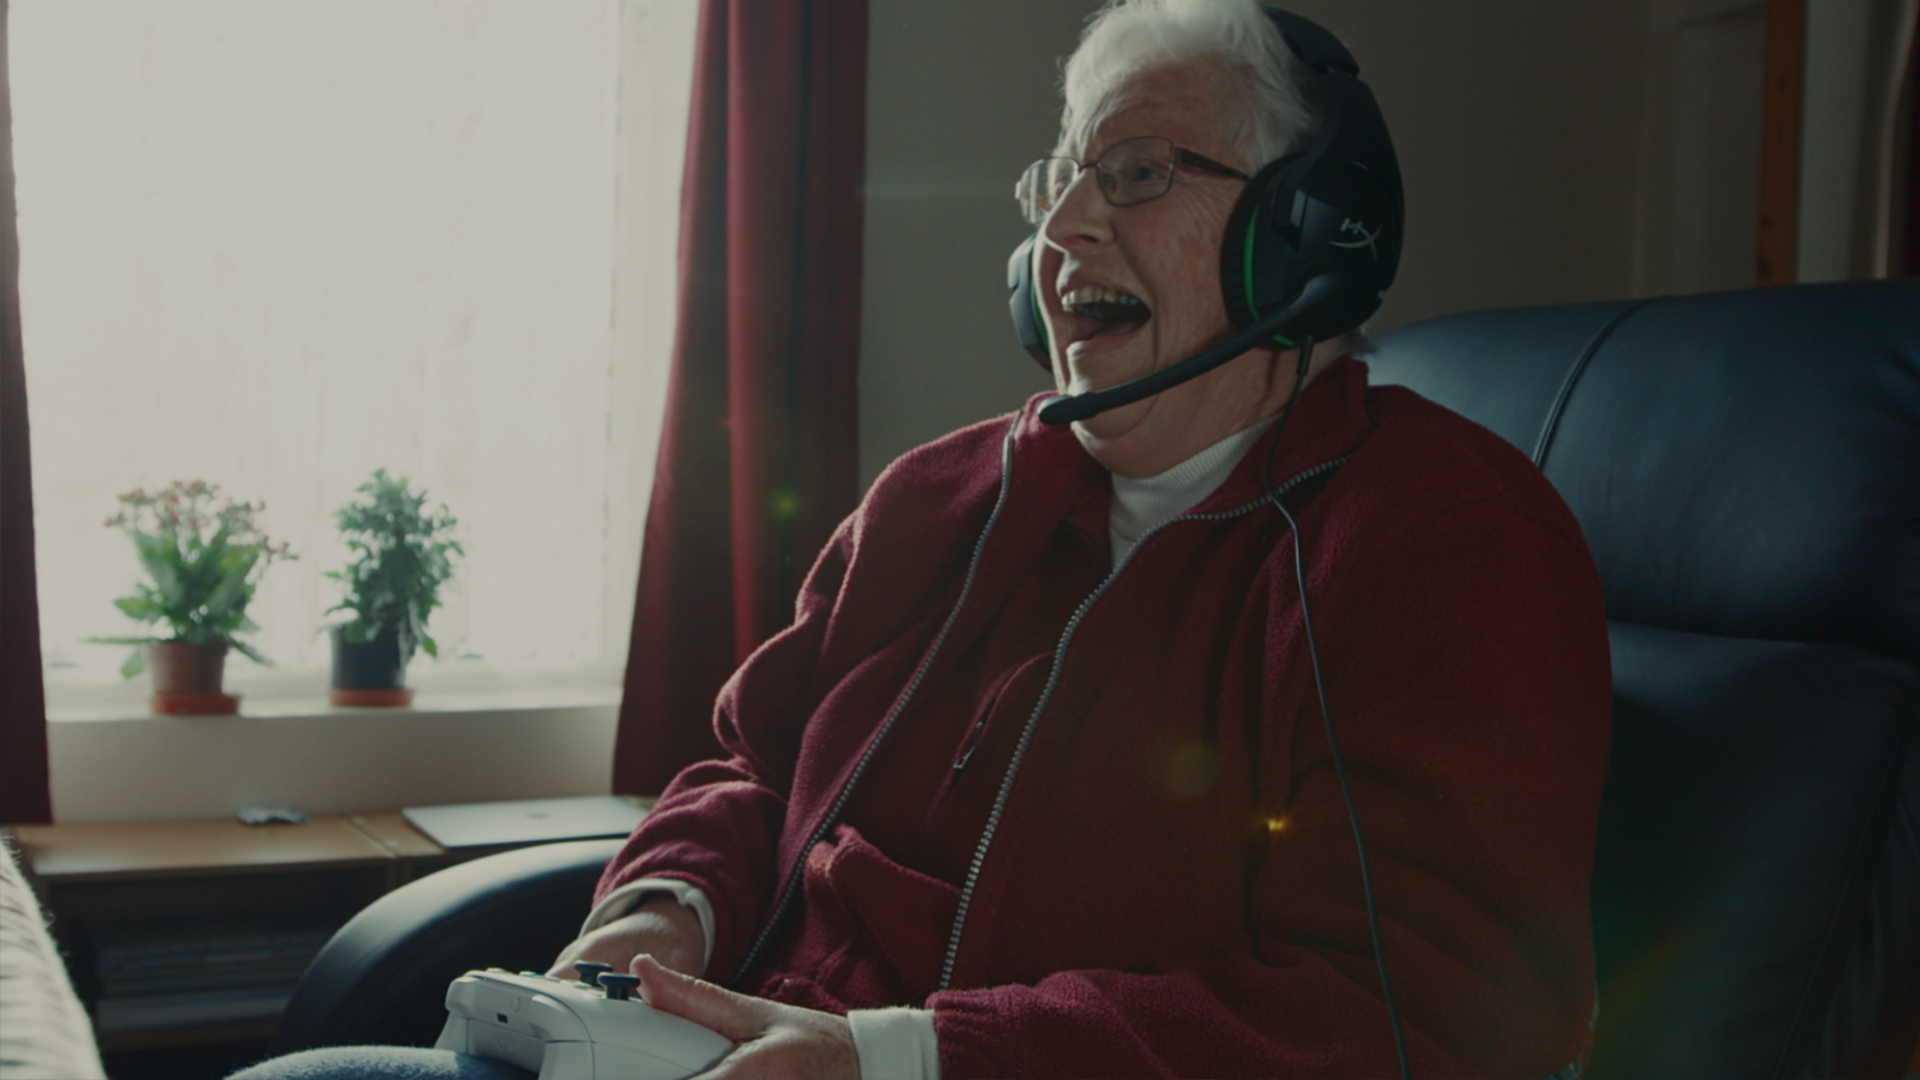 An image of Mary playing Xbox, with the quote